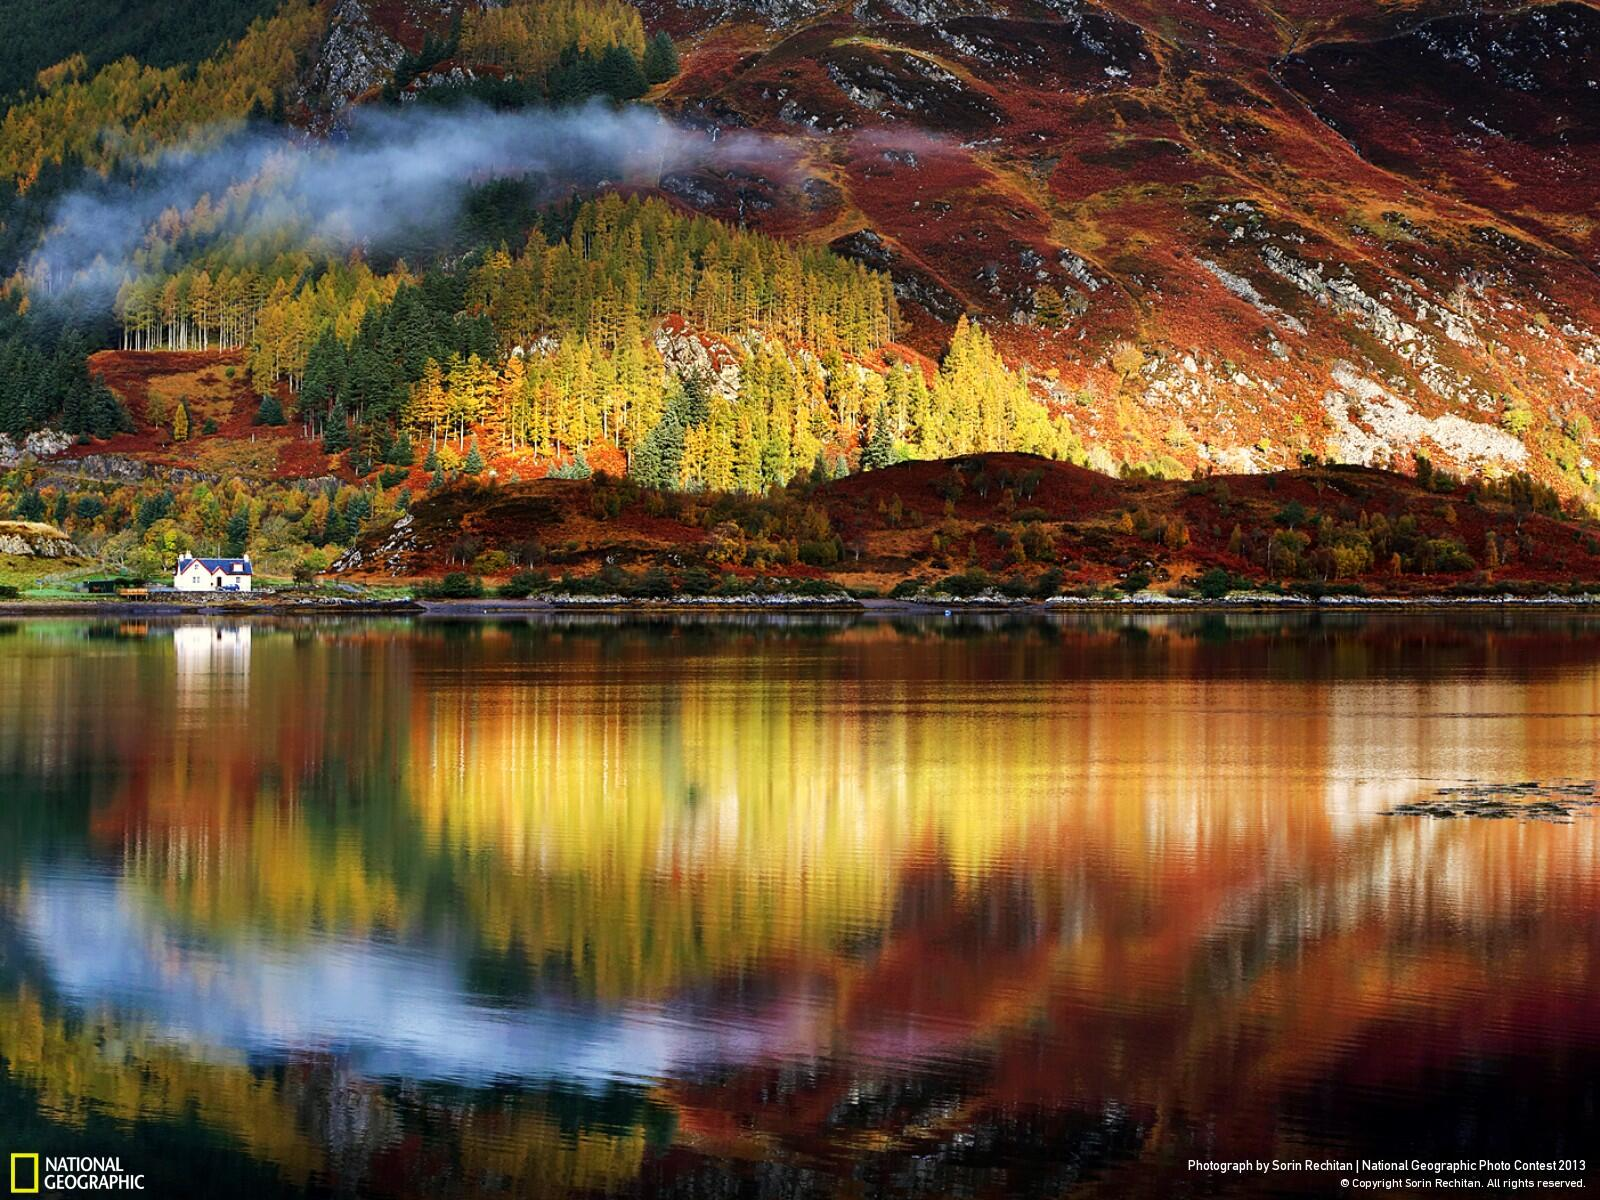 Late Autumn in the Highlands of Scotland http://t.co/3wuQQnvWlq